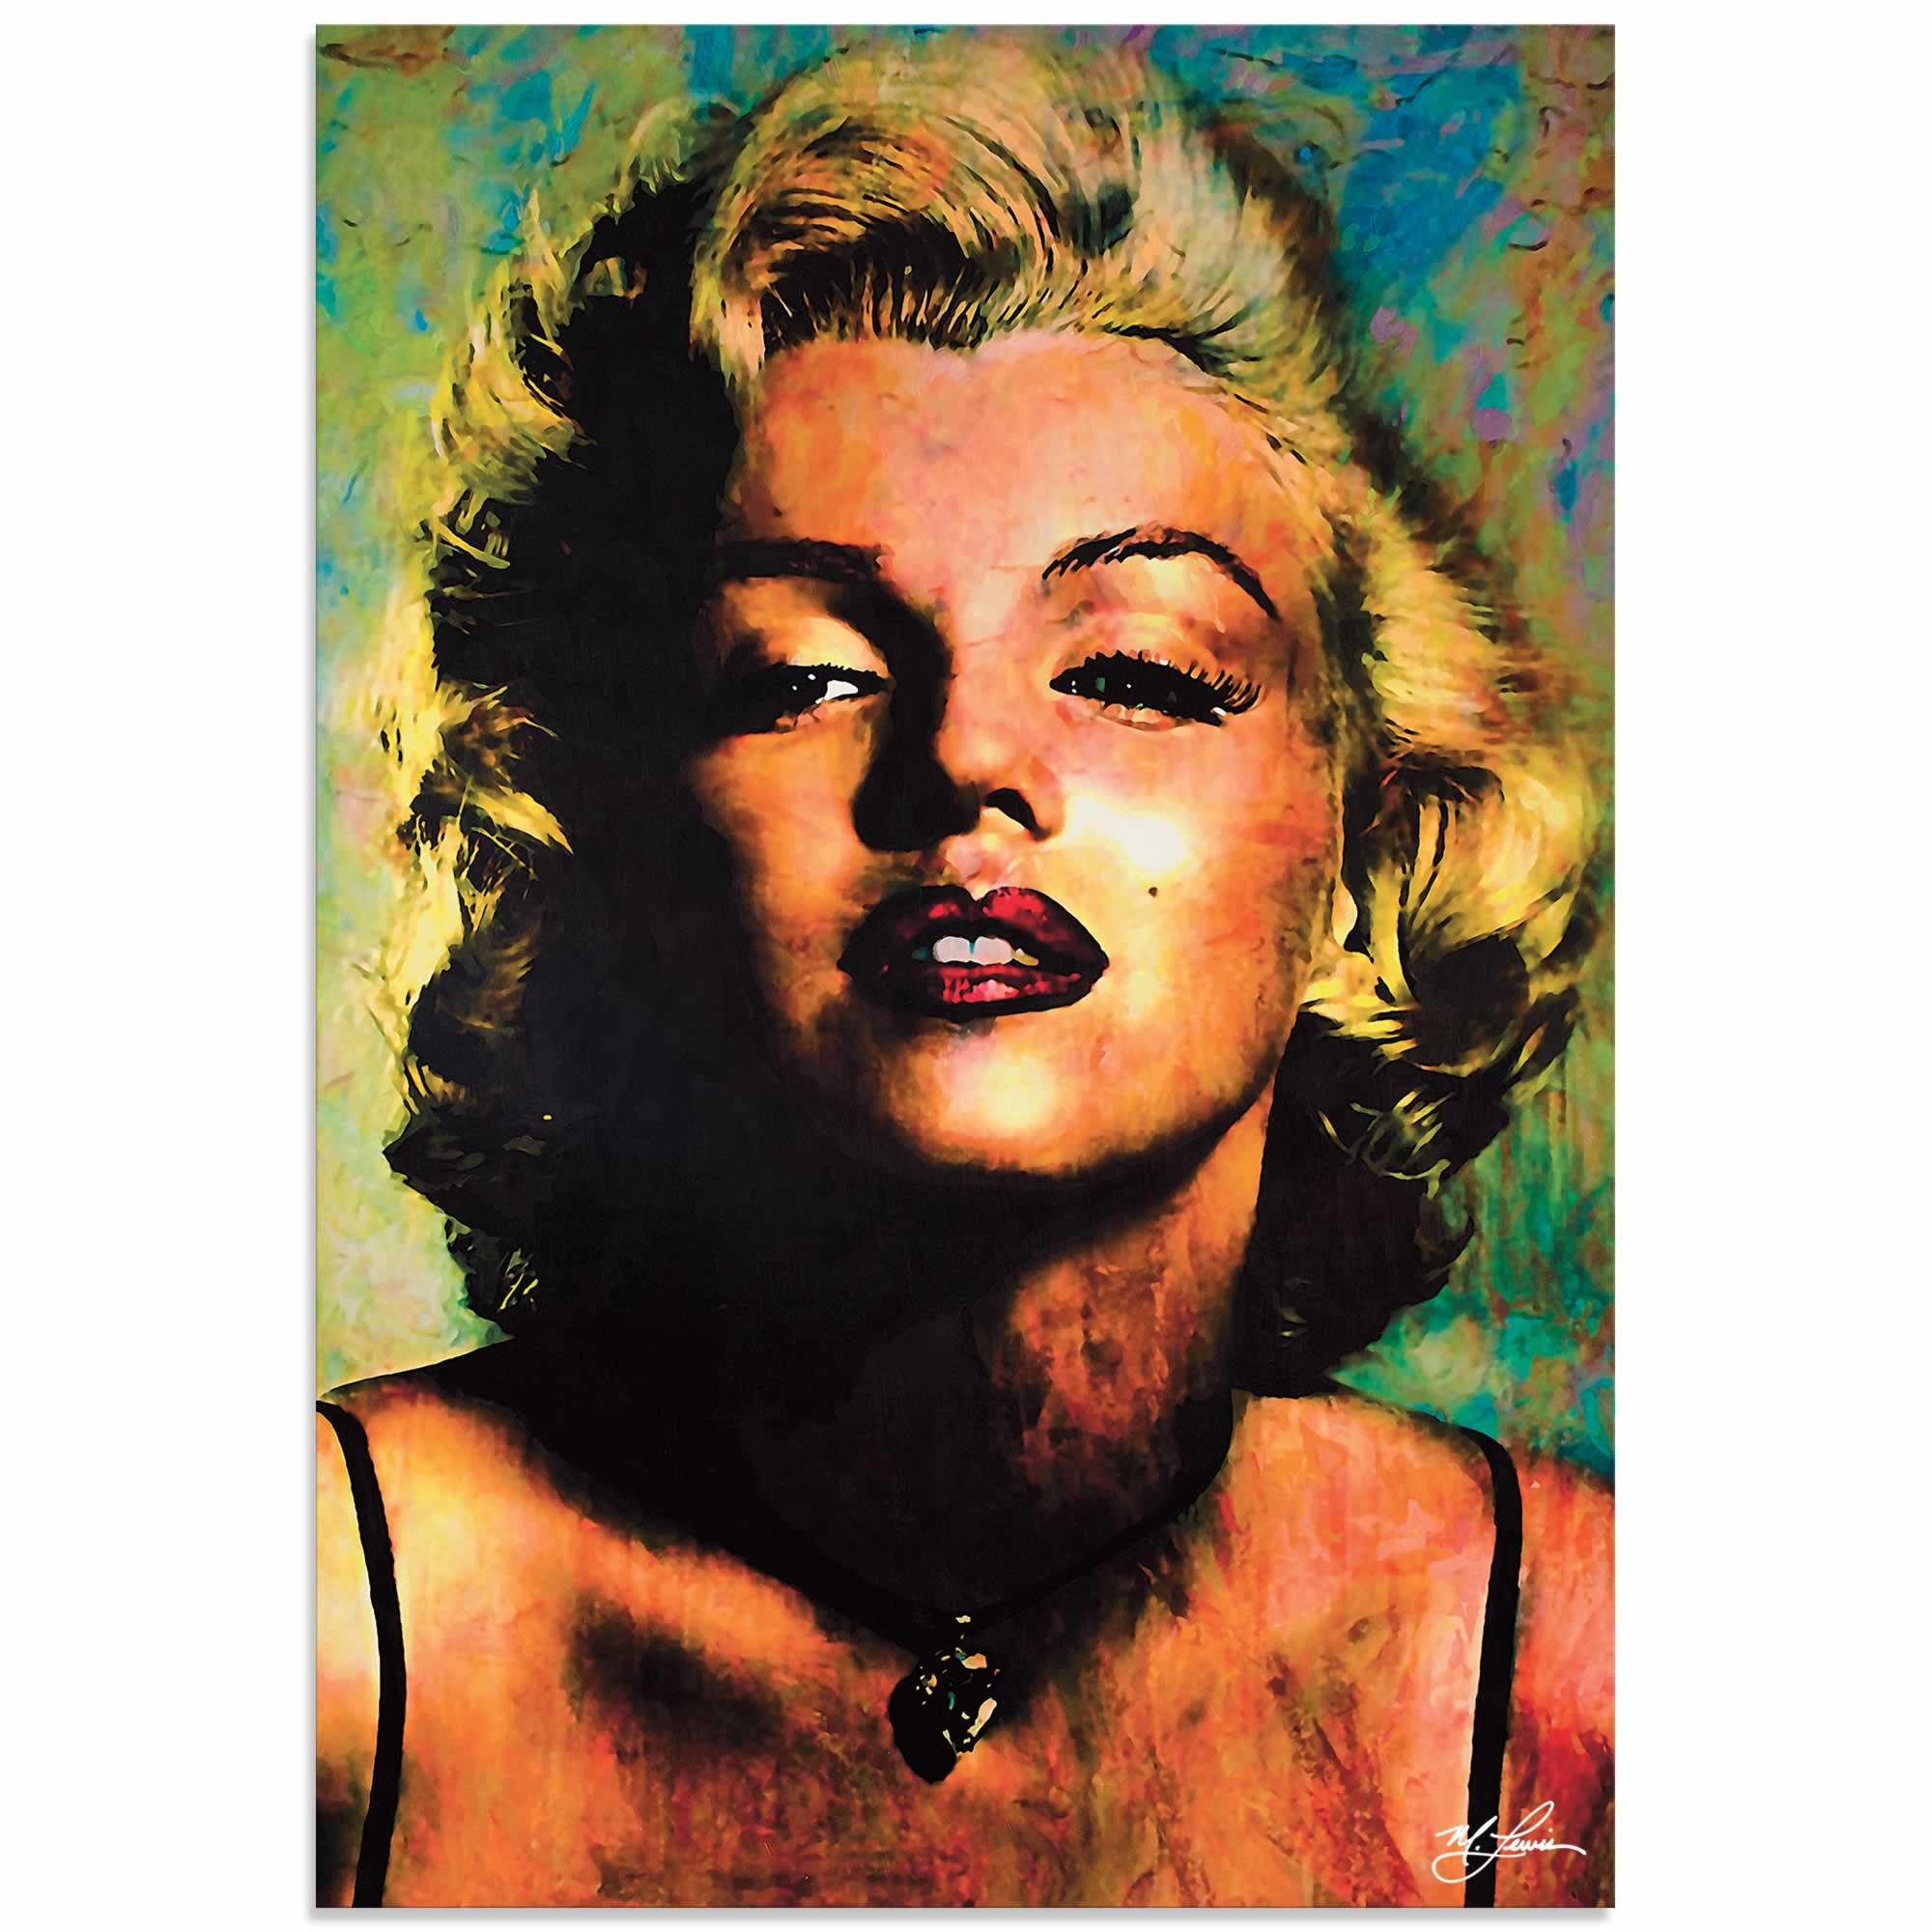 Art Marilyn Marilyn Monroe Insatiable Pop Art Painting By Mark Lewis Signed Numbered Limited Edition